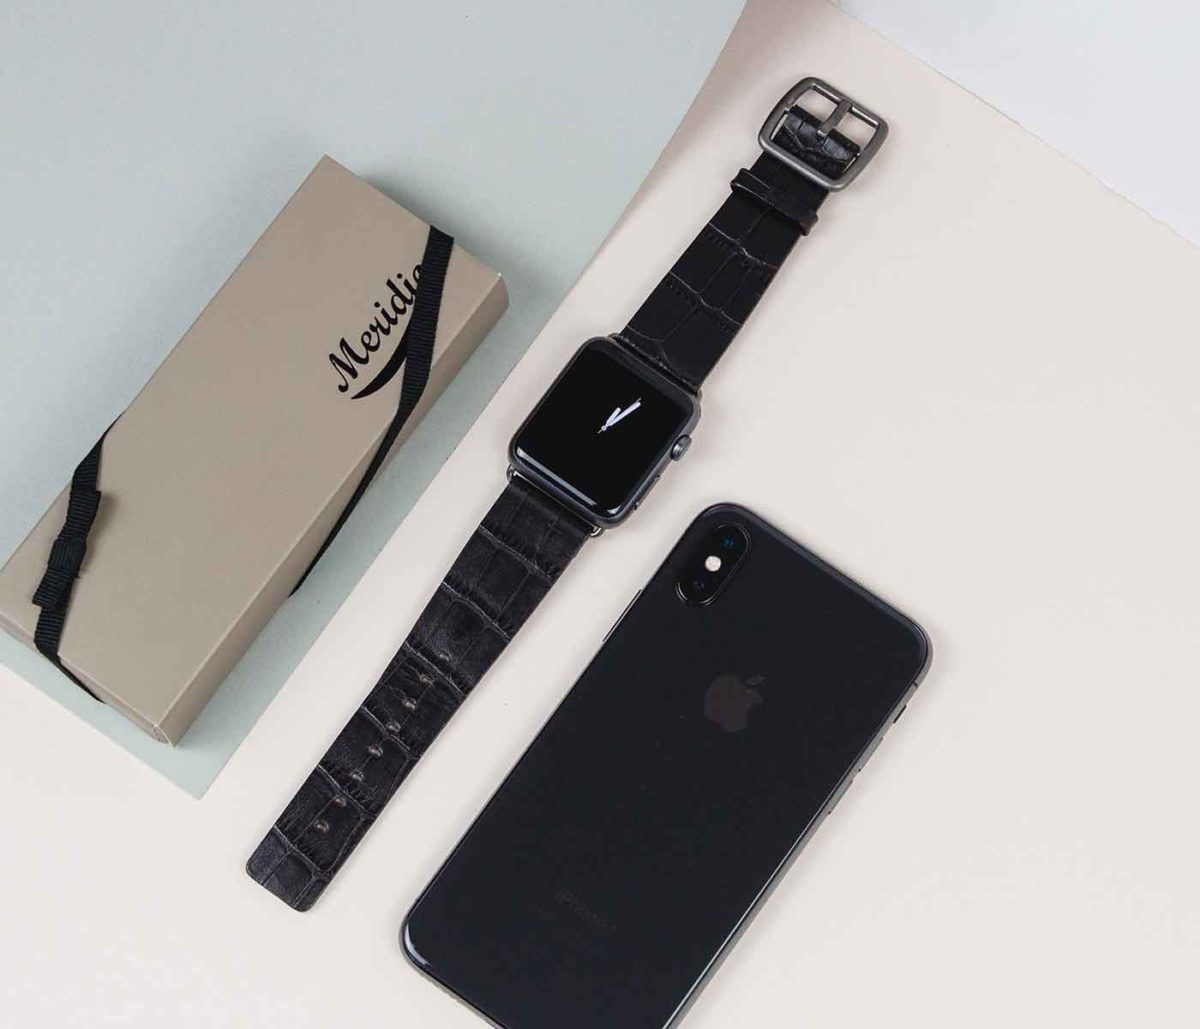 Pitch-black-printed-leather-band-on-top-close-to-iphoneX